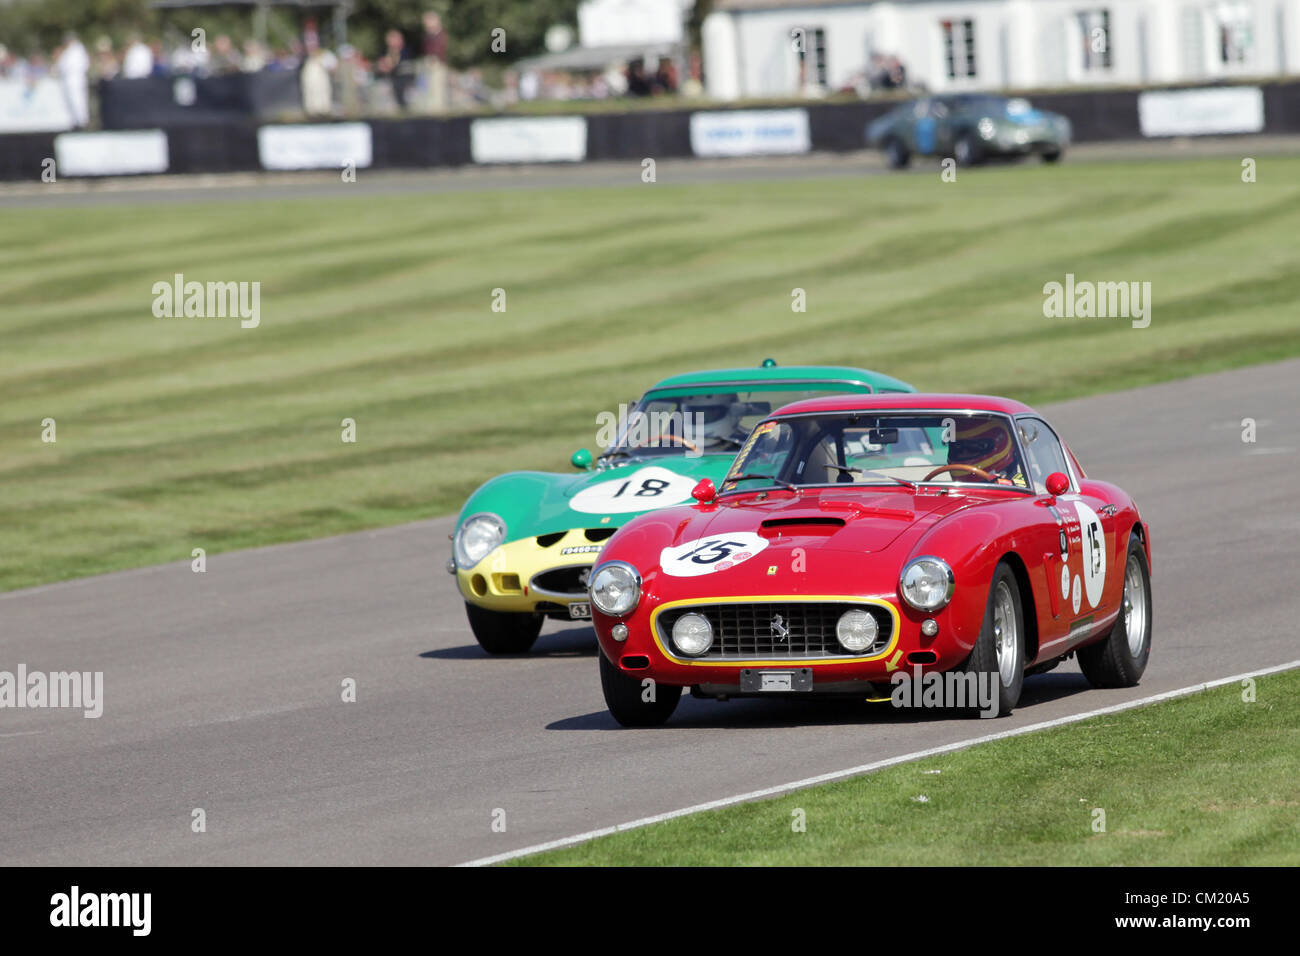 Goodwood Estate, Chichester, UK. 15th September 2012. Arturo Merzario pictured driving a red 1960 Ferrari 250 GT - Stock Image